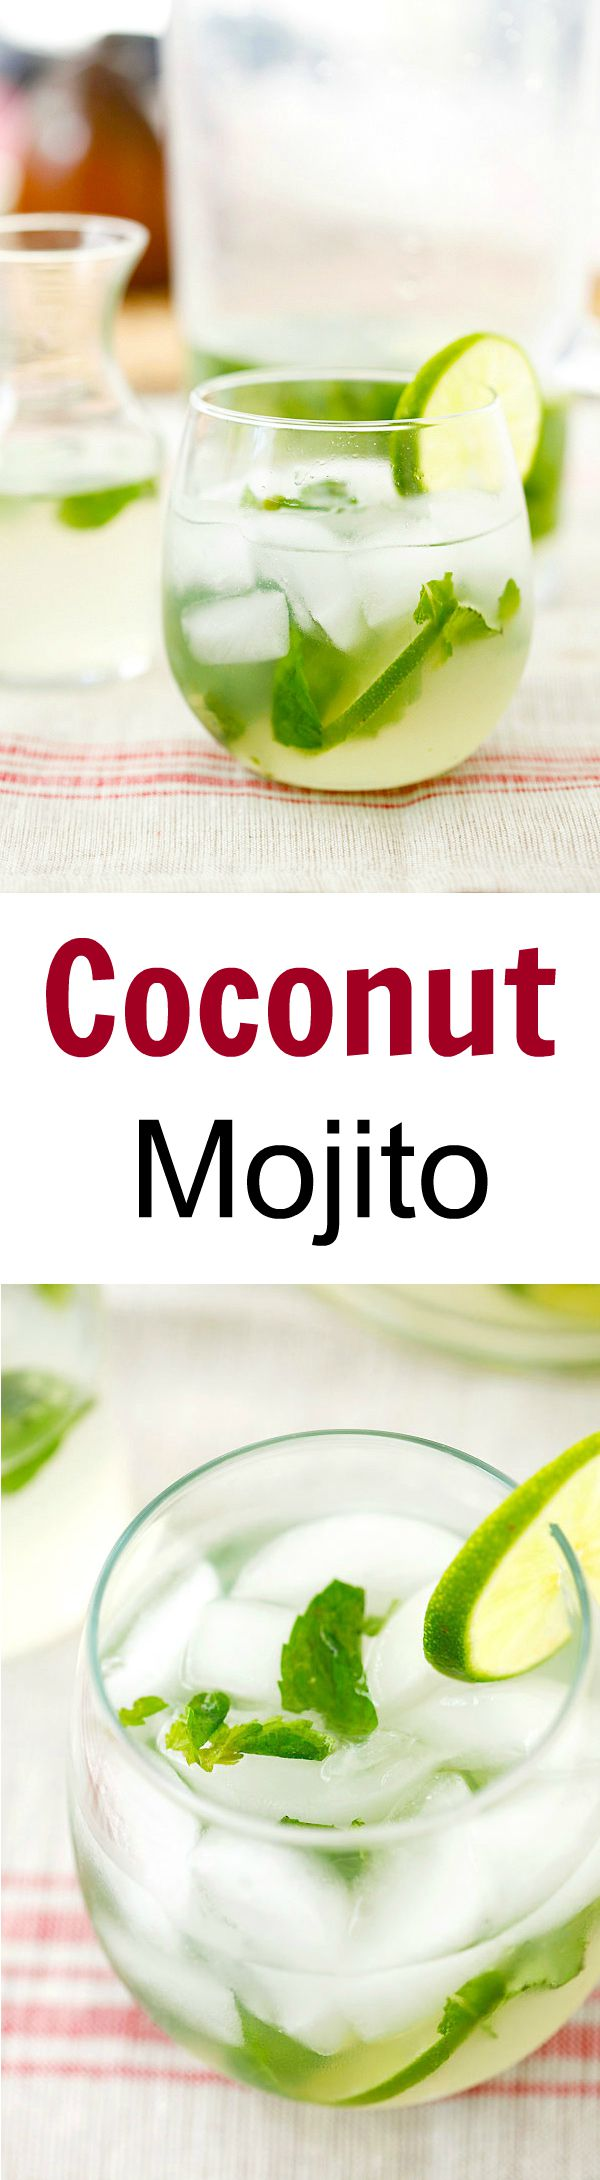 Coconut Mojito - Add tropical flavor to your regular mojito with this easy, healthy and refreshing coconut mojito recipe that takes only 10 mins to make! | rasamalaysia.com